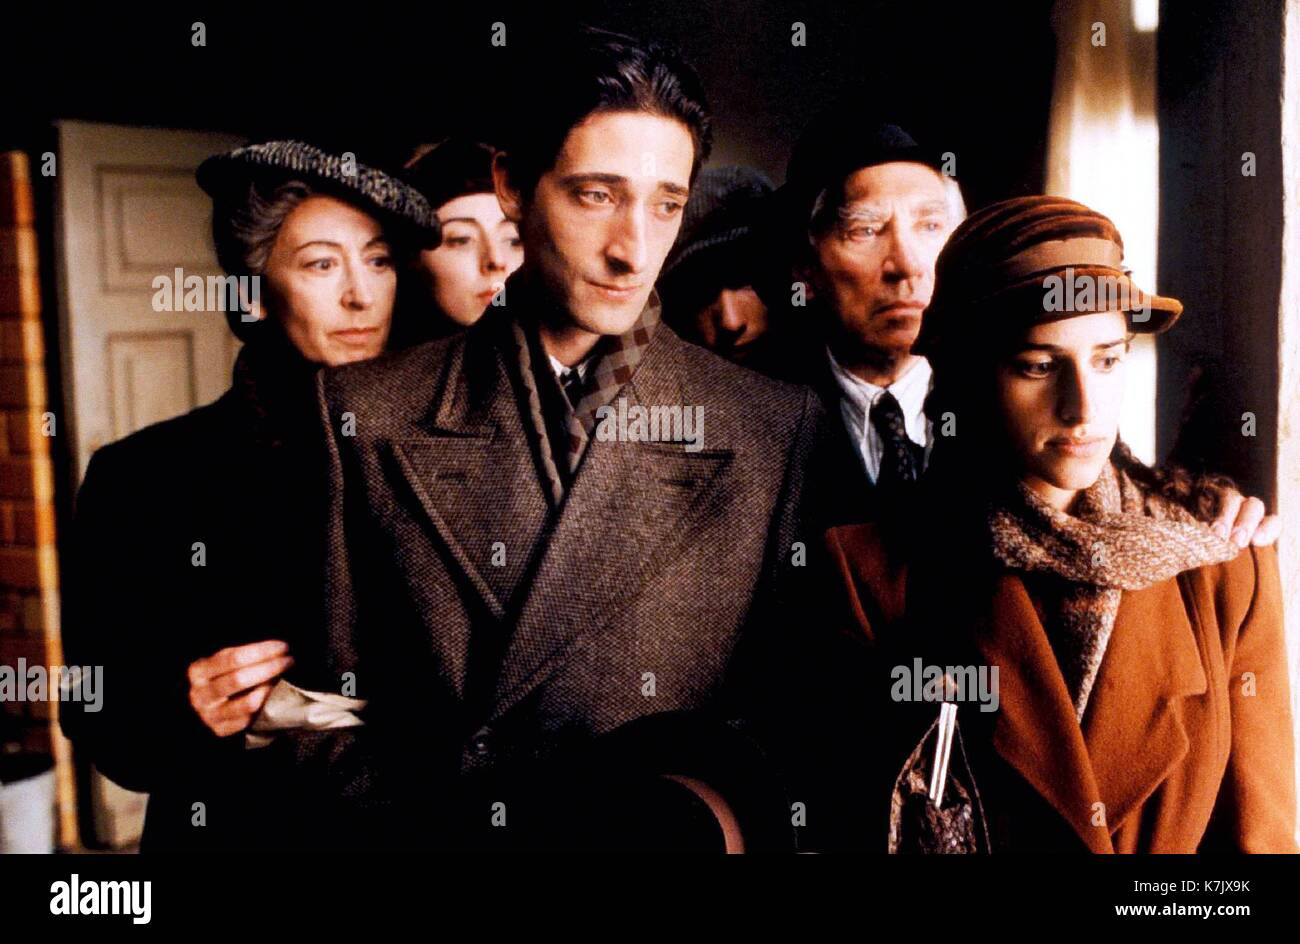 Photo Must Be Credited ©Alpha Press 070000 (2002)  Maureen Lipman, Julia Rayner, Adrien Brody, Ed Stoppard, Frank Finlay and Jessica Kate Meyer  in Roman Polanski's movie The Pianist - Stock Image